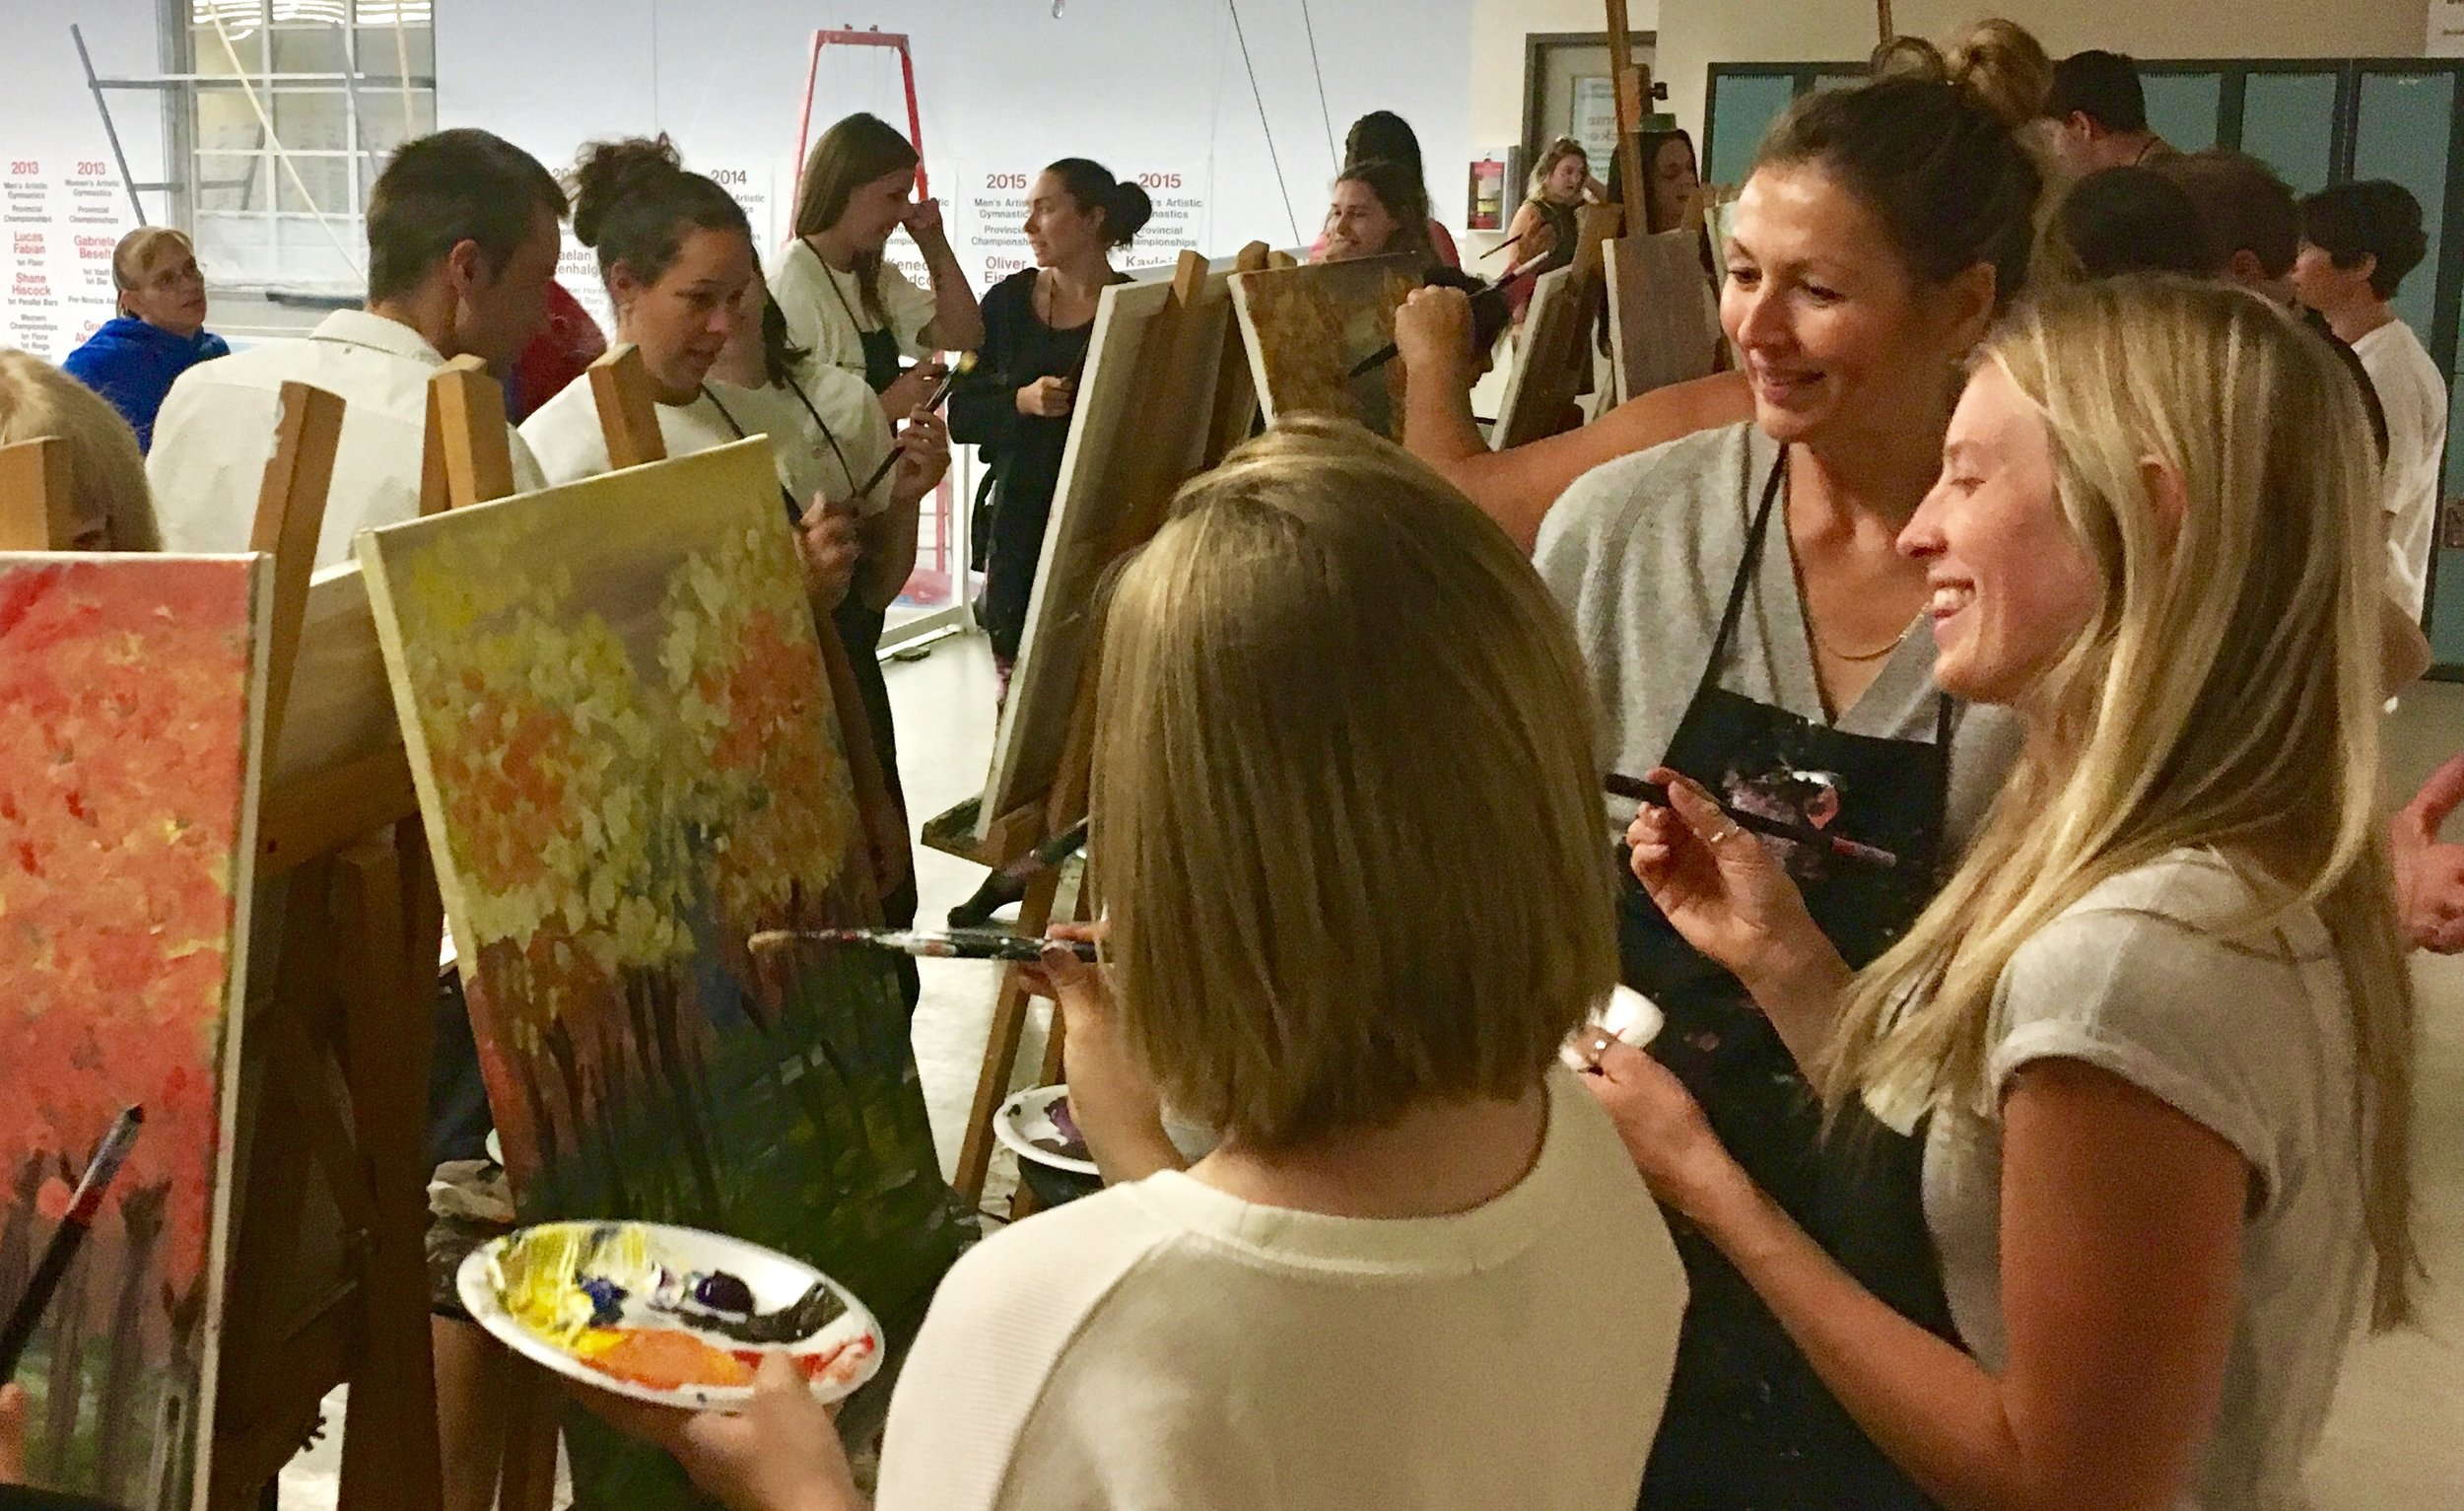 CORPORATE TEAM BUILDING PAINT PARTIES - Whether it be a deeper sense of camaraderie or a time to relax as cohorts, there is always team building happening.